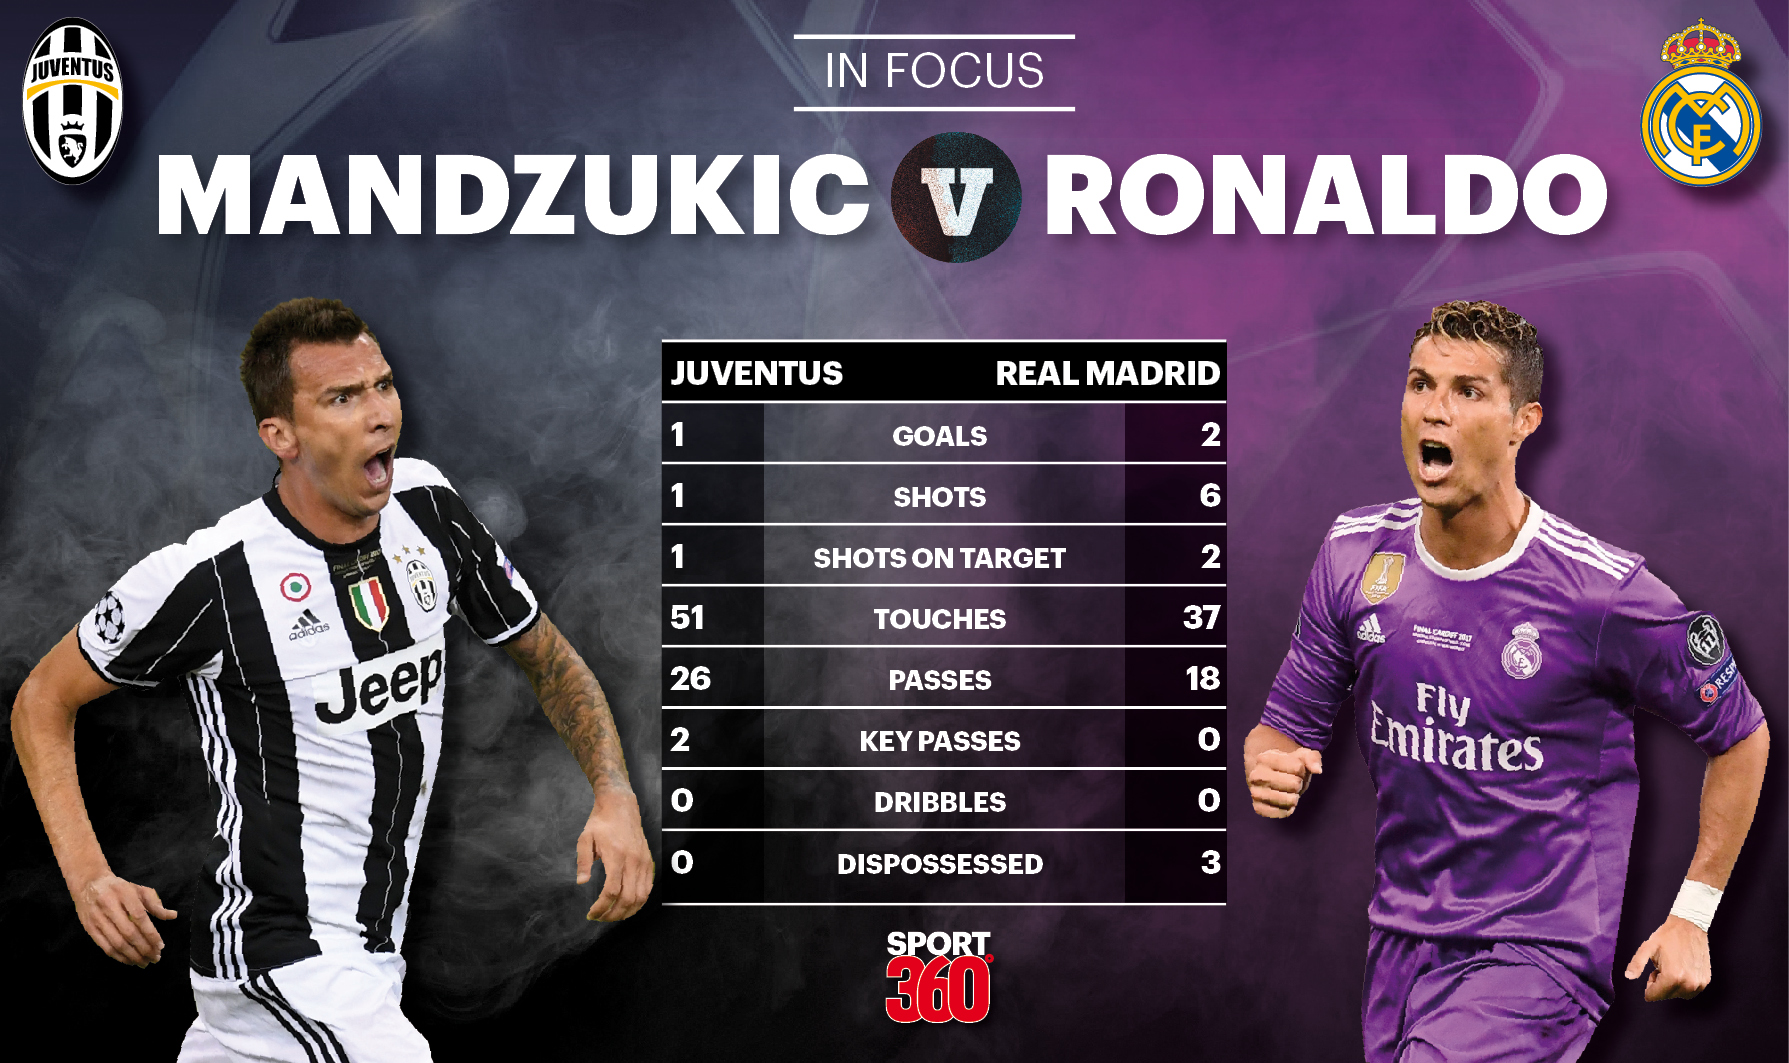 Juventus 1-4 Real Madrid: In Focus – How Ronaldo and Mandzukic fared in the Champions League ...